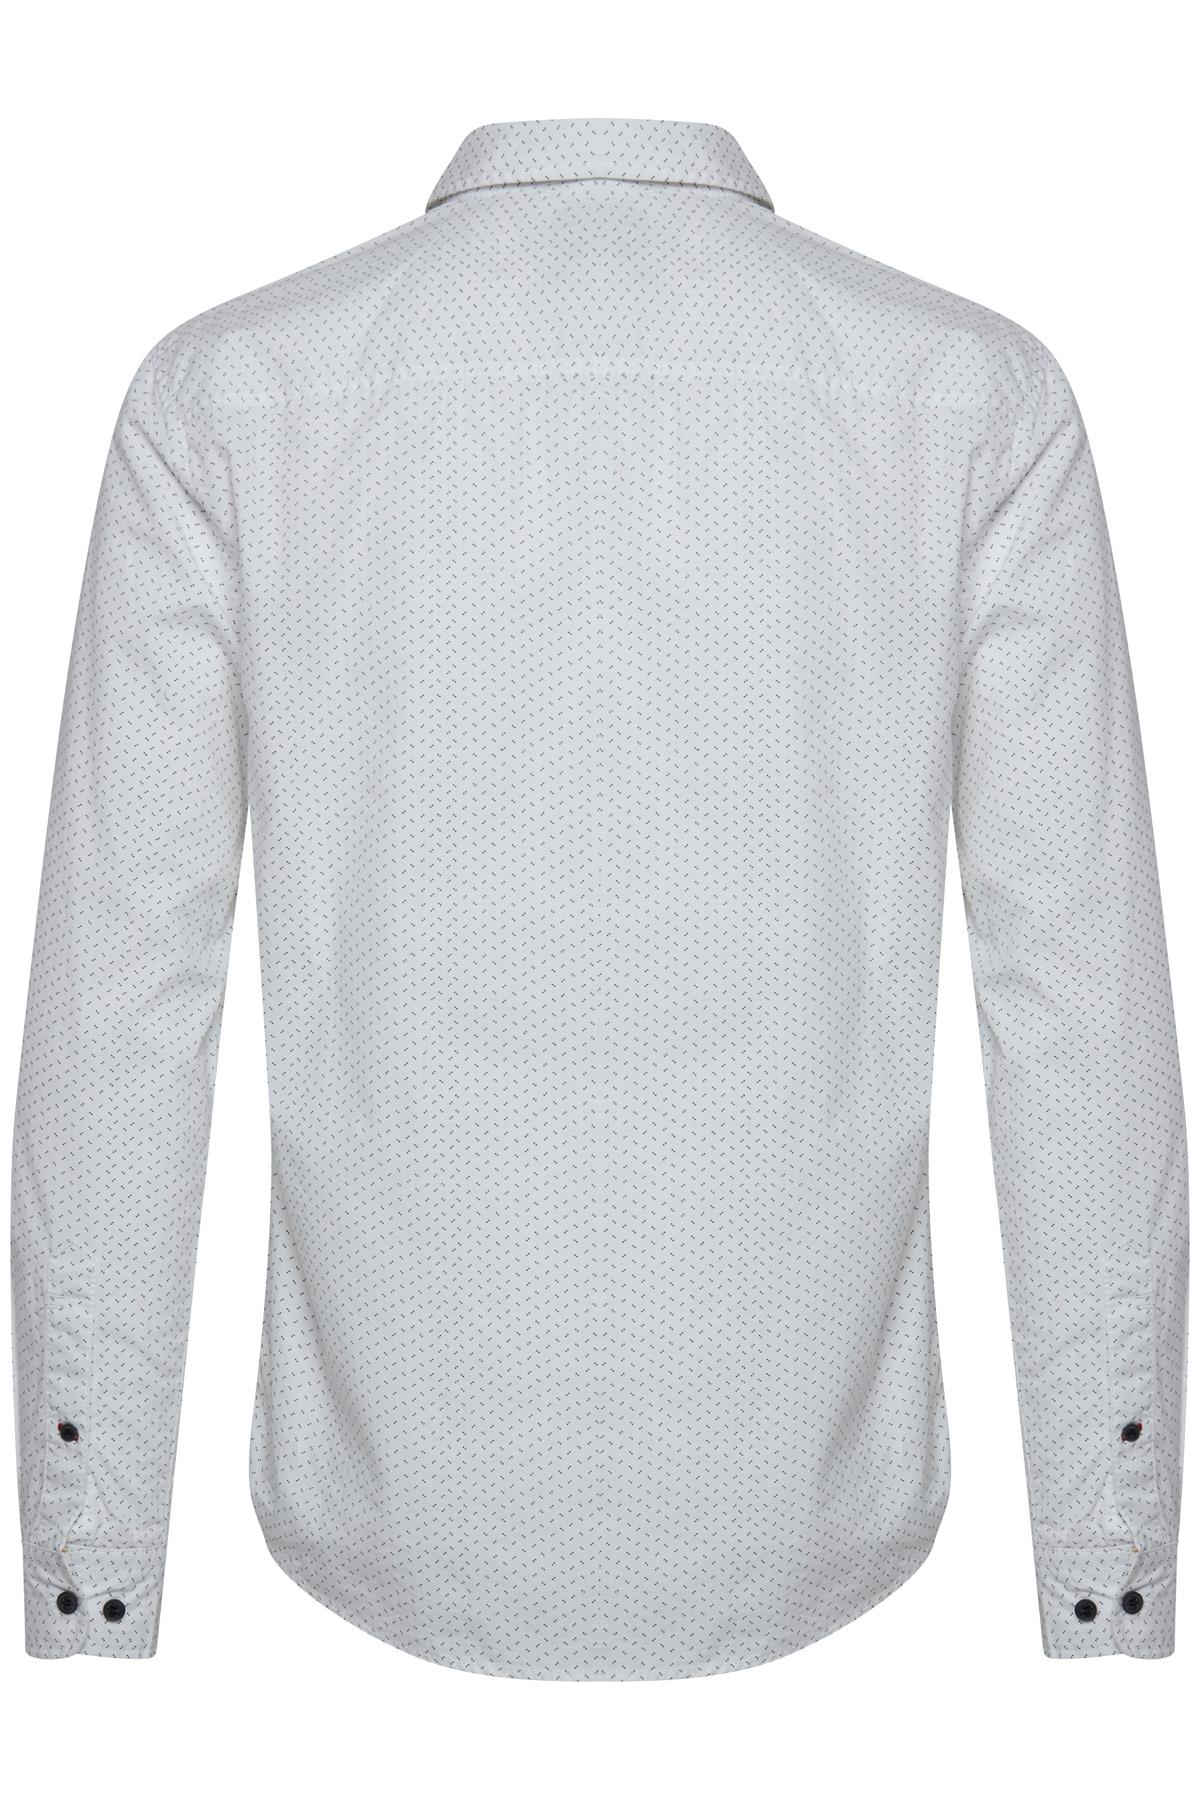 White Long sleeved shirt fra Blend He – Køb White Long sleeved shirt fra str. S-XXL her